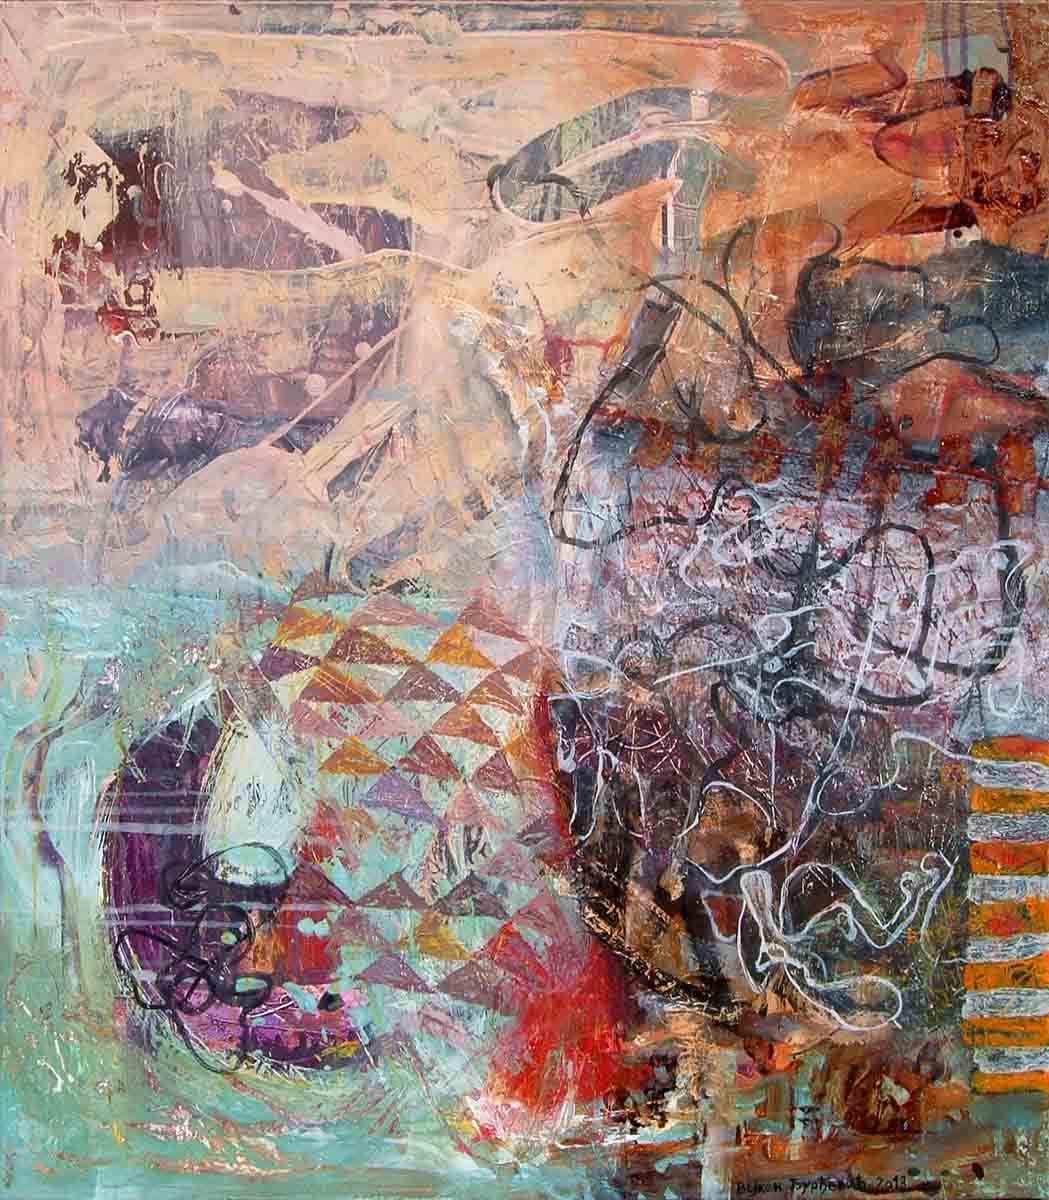 Be Related to Poetry, 80x70, Mixed Media on Canvas